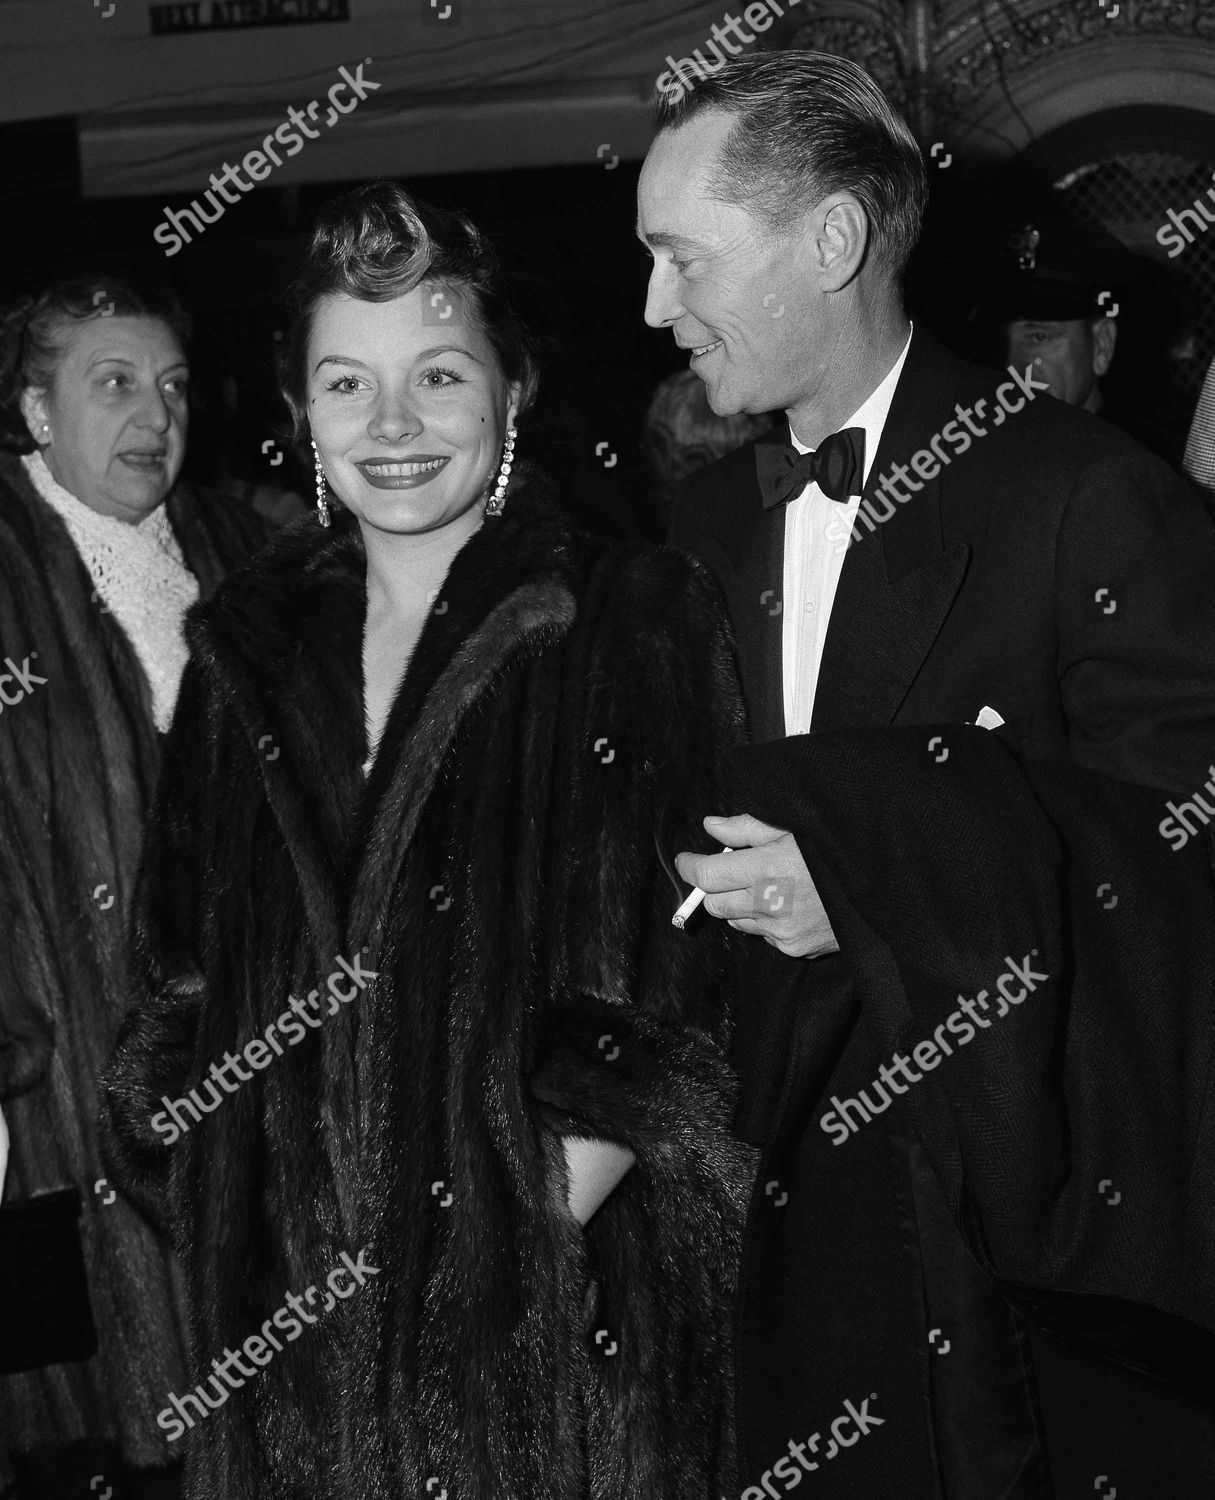 https://editorial01.shutterstock.com/wm-preview-1500/6629816a/d05a7ce2/franchot-tone-and-barbara-payton-los-angeles-usa-shutterstock-editorial-6629816a.jpg